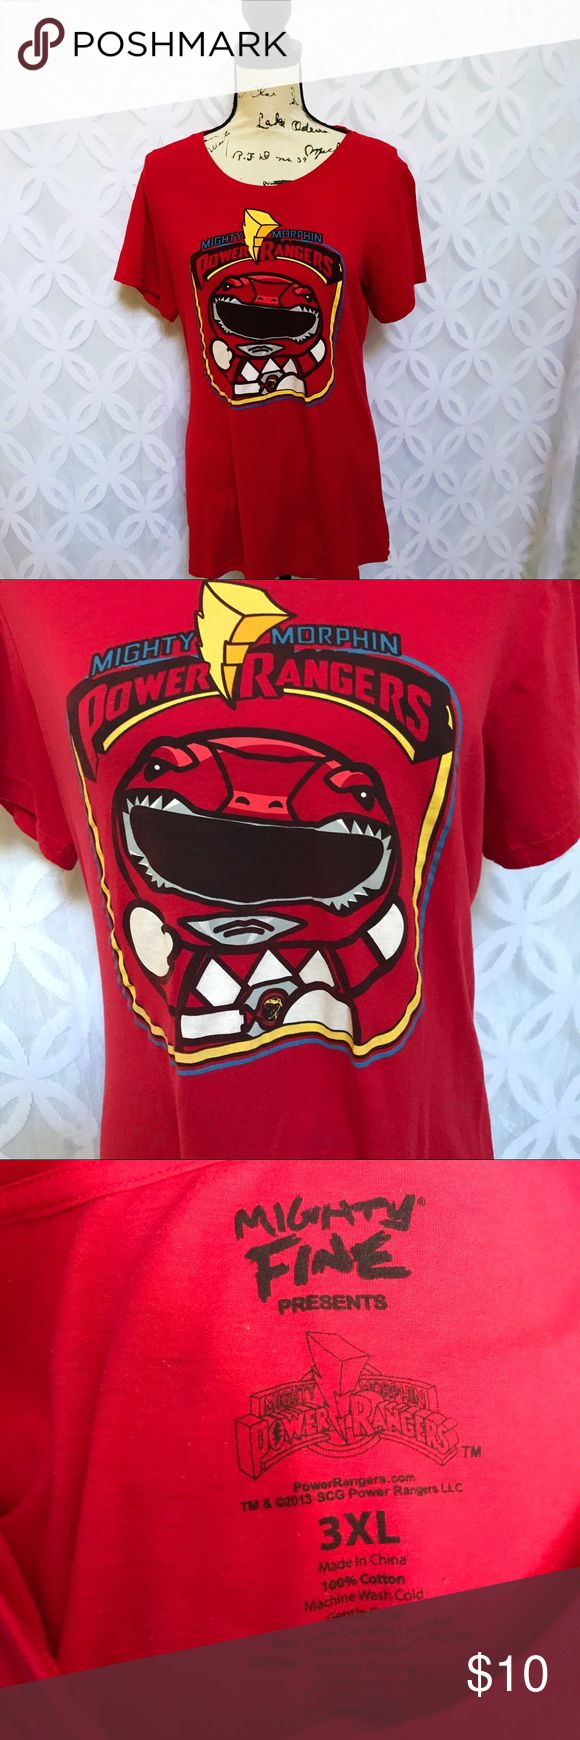 "Mighty Morphin Power Rangers Chibi Red Ranger Tee Mighty Morphin Power Rangers Chibi Ranger Tee Pre owned Great used condition worn once.                                                     Measurements Laying Flat Size 🔹 Juniors Plus 3XL Armpit to Armpit 🔹22"" Shoulder to Hem 🔹28"" Bundle to Save 🤓 Sorry NO outside transactions 🚫 NO trades 🚫 Reasonable Offers welcomed 👍 NO Low balling 👎 NO modeling 👎 NO Holds👎 All items from a pet 😼and Smoke Free Home  Happy Poshing 🤗 Power Ranger…"